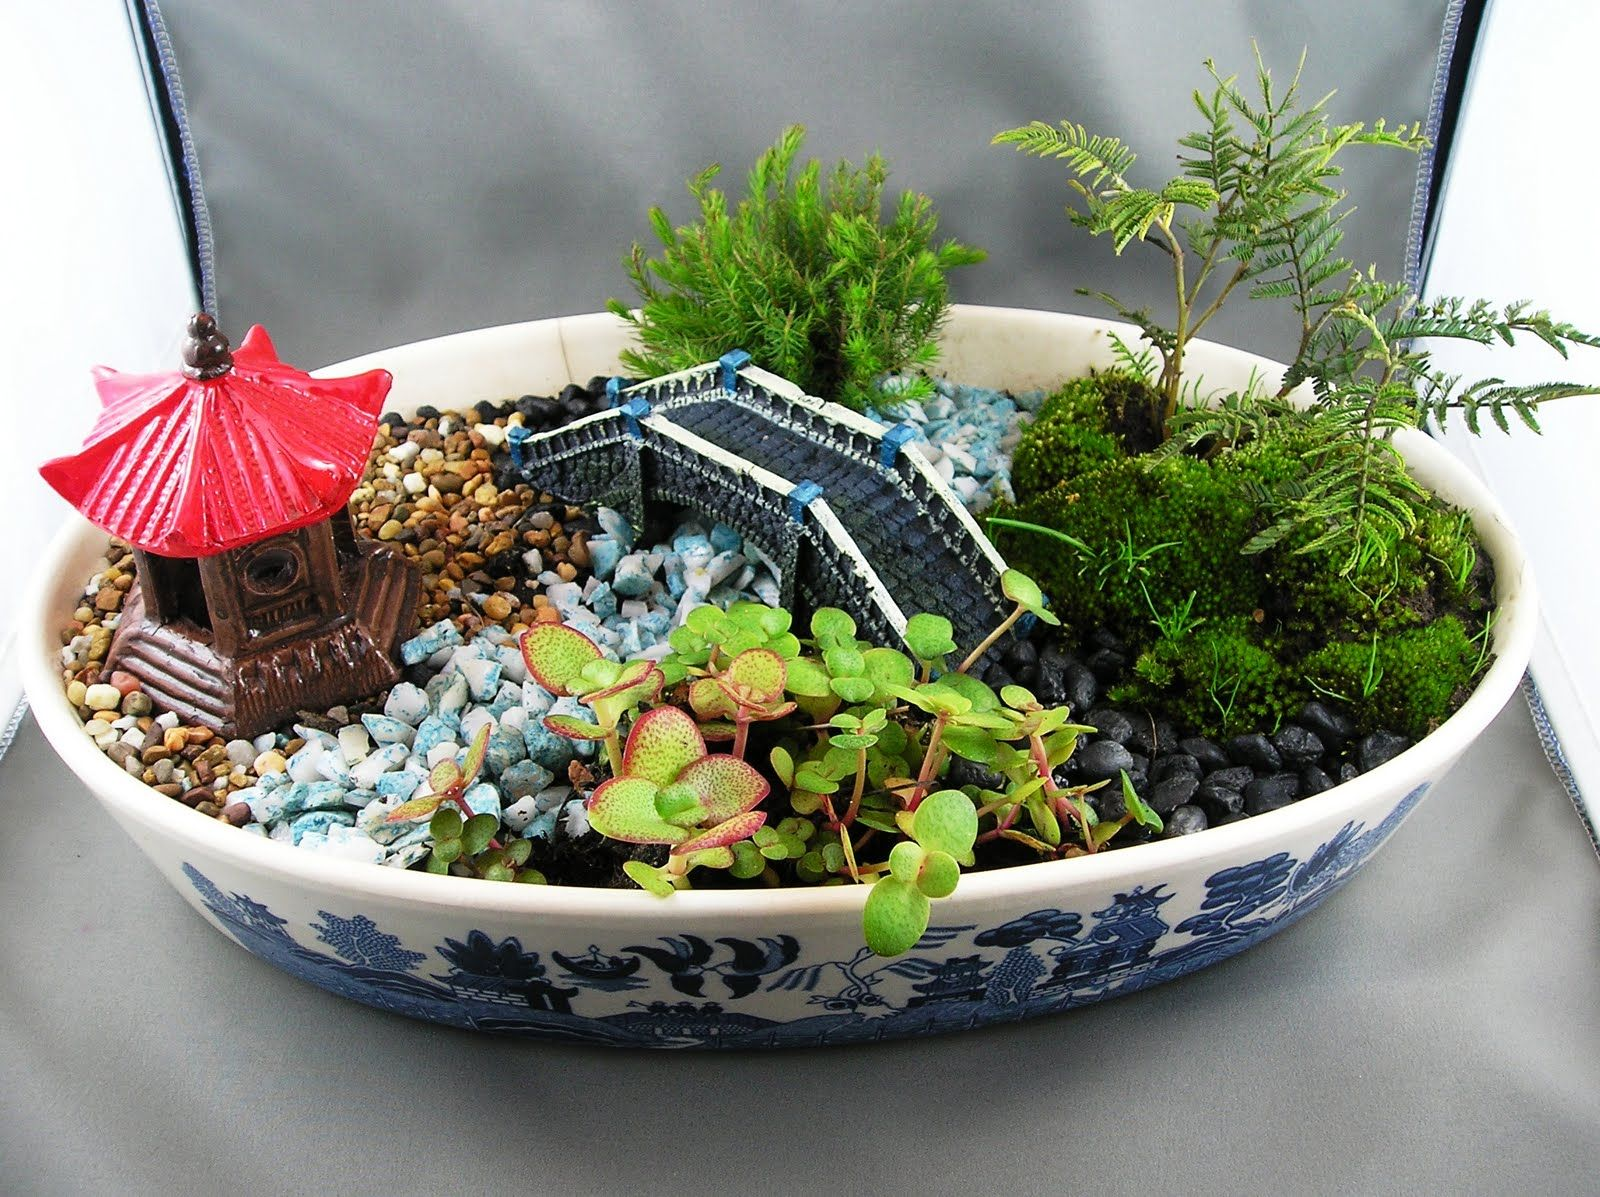 17 Best 1000 images about Dish Gardens on Pinterest Gardens Moss